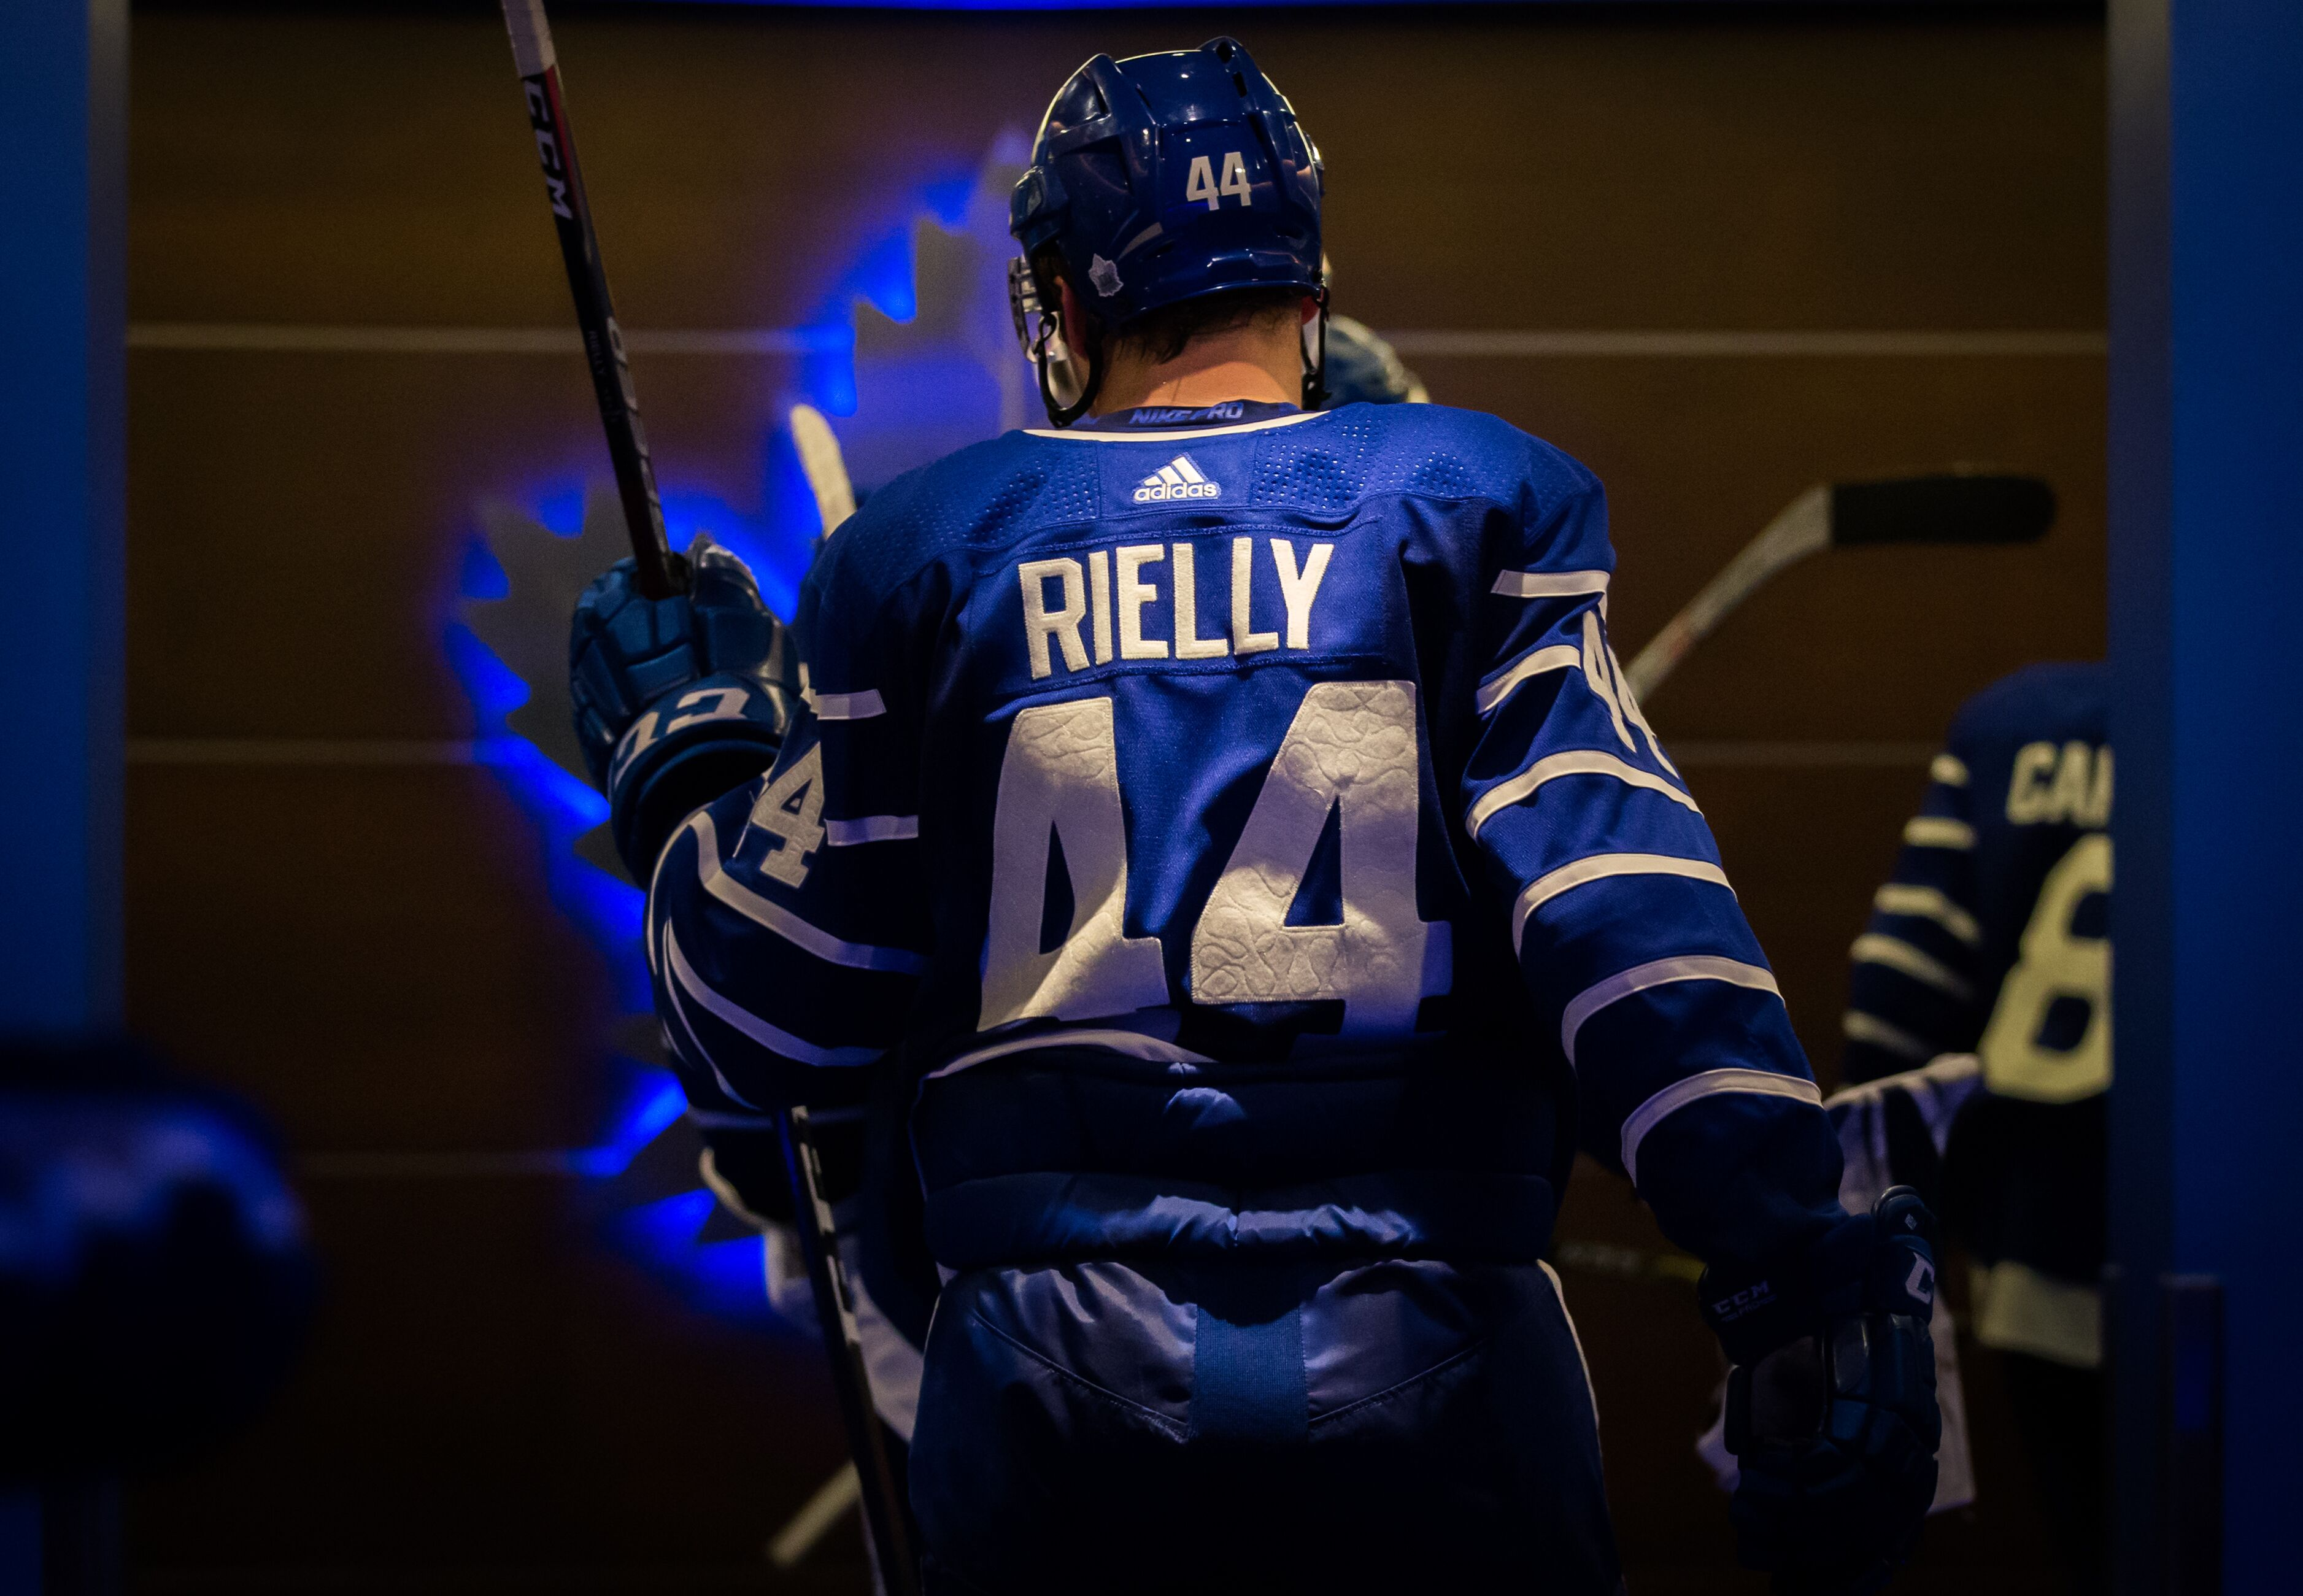 finest selection 1fc06 94f2f Toronto Maple Leafs: Morgan Rielly Should be Captain